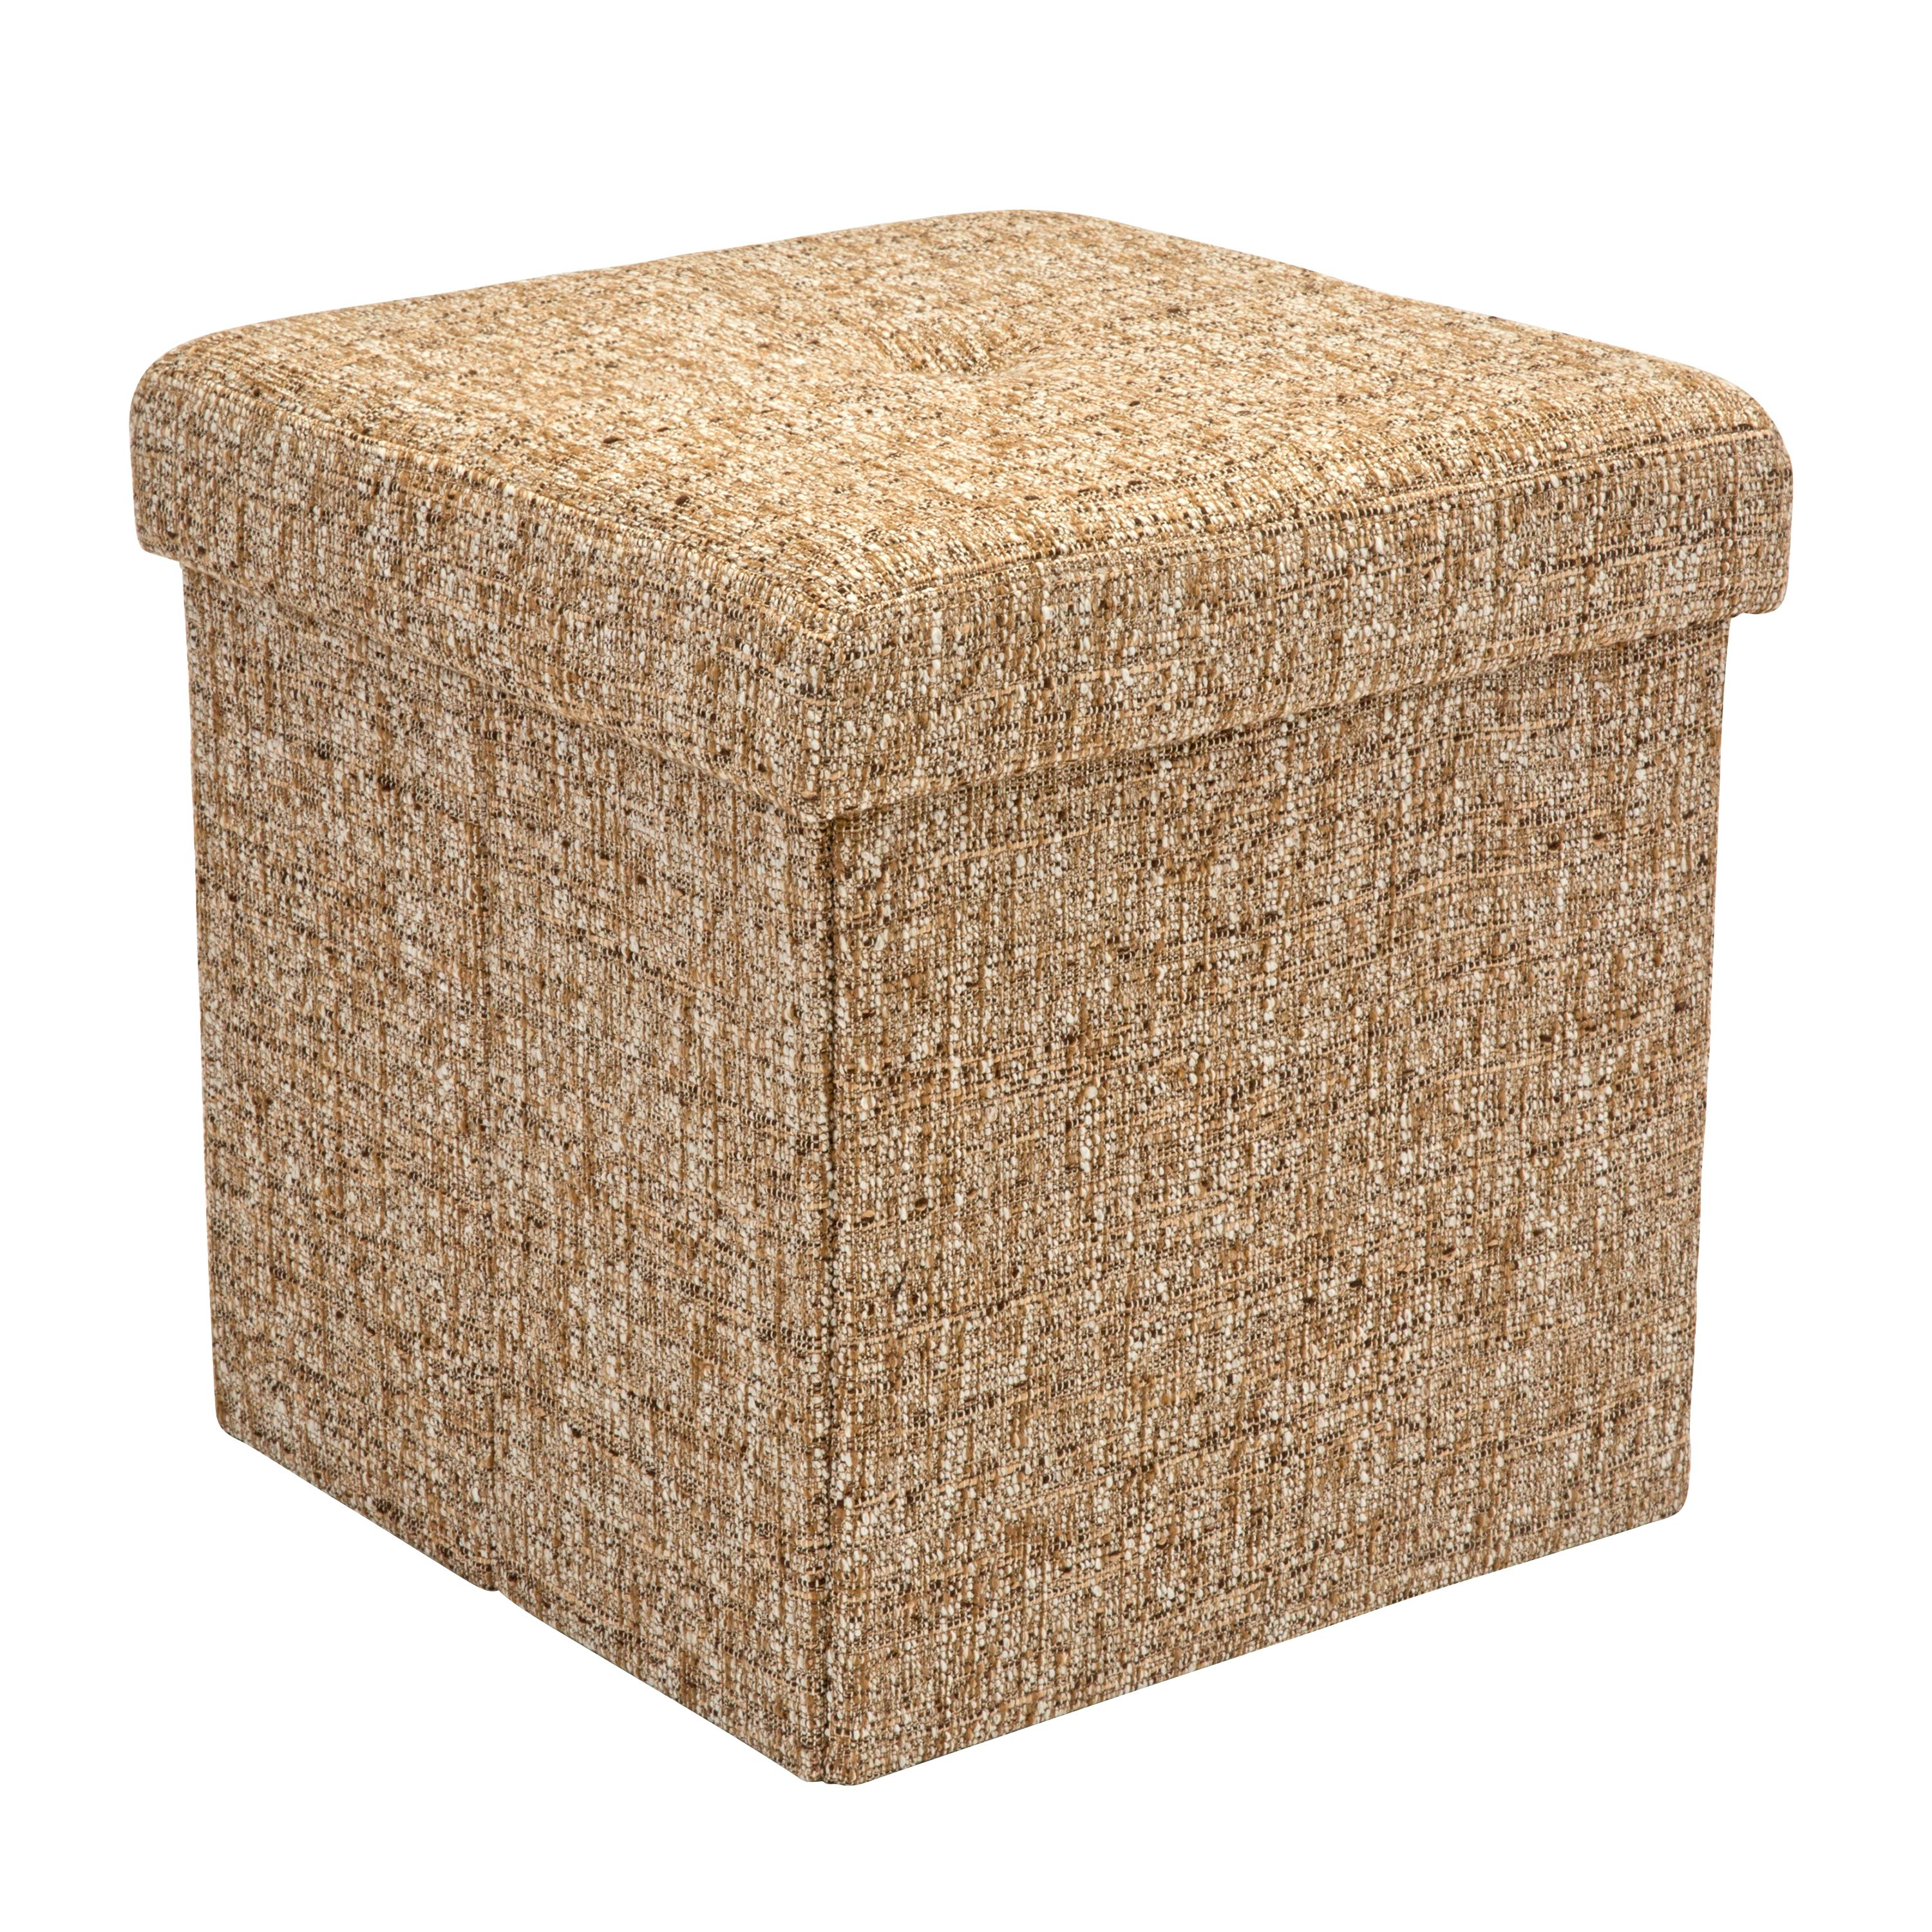 Simplify Gray Boucle Linen ottoman / Storage cube Gray (15x15x15)